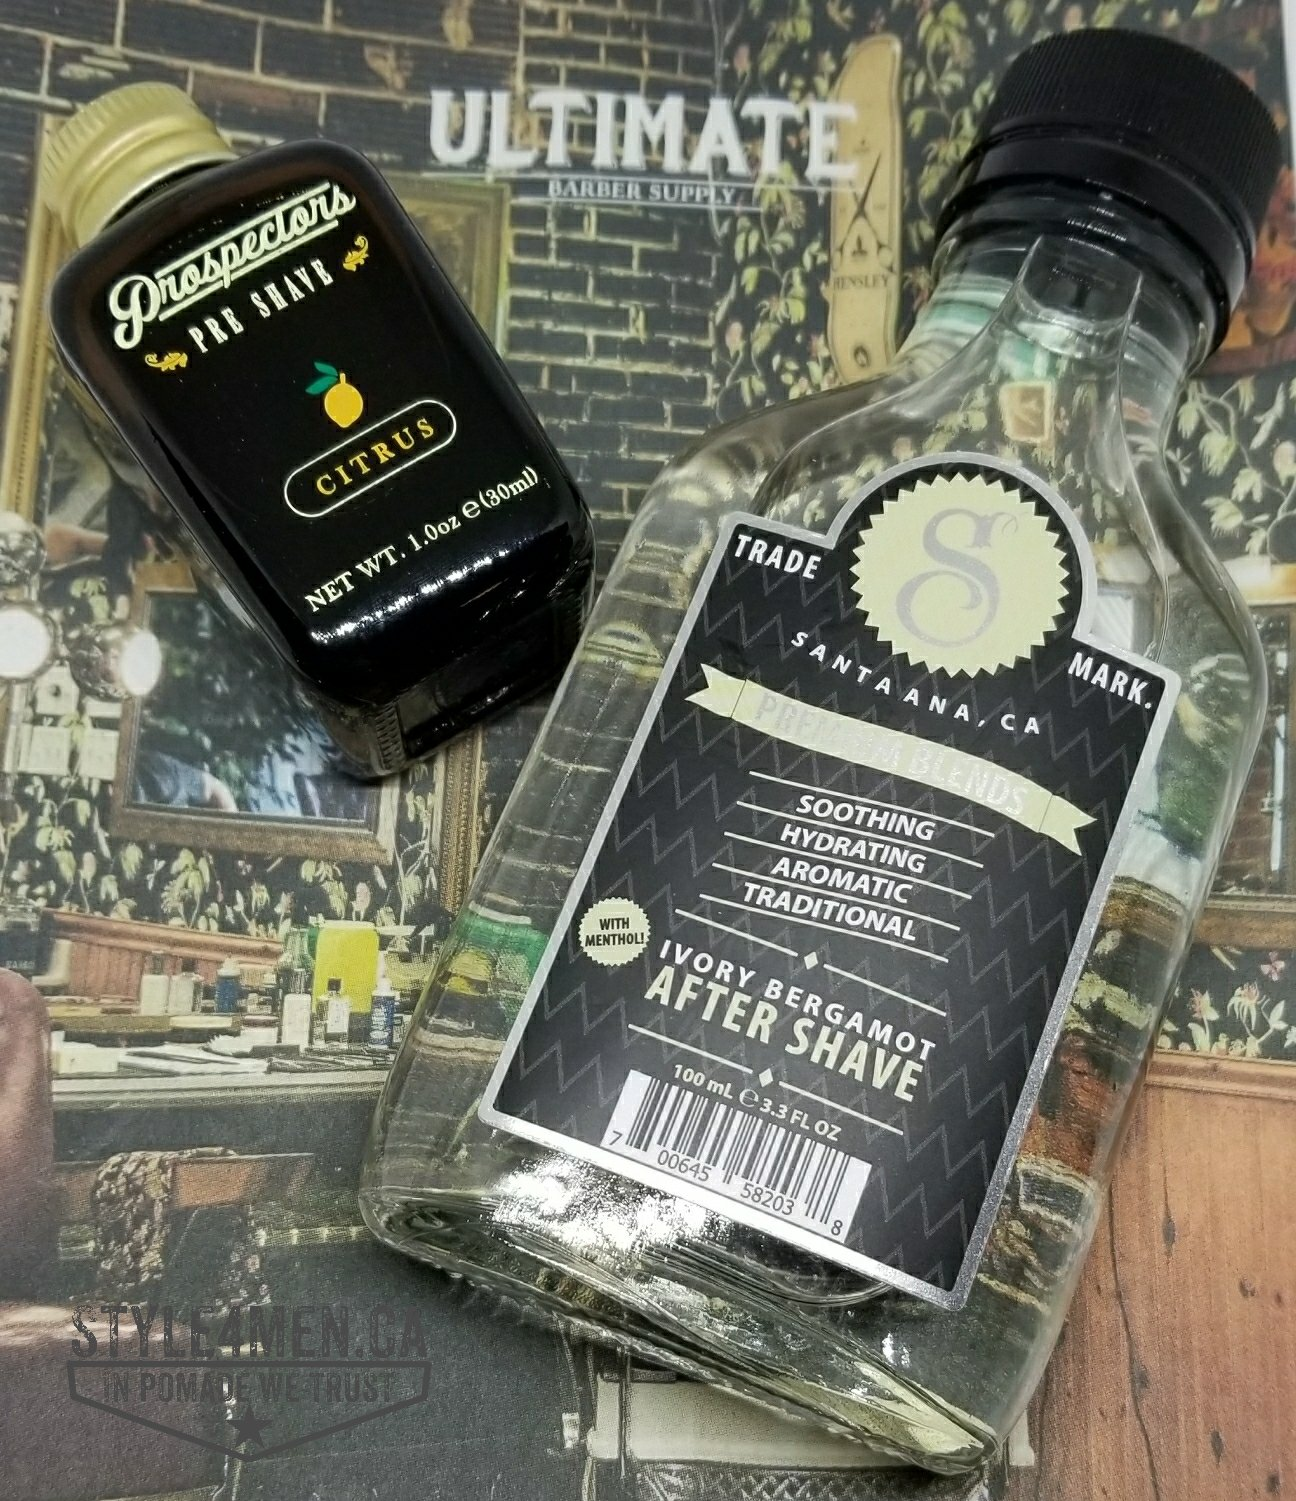 Shaving in total comfort with Prospectors oil and Suavecito's aftershave